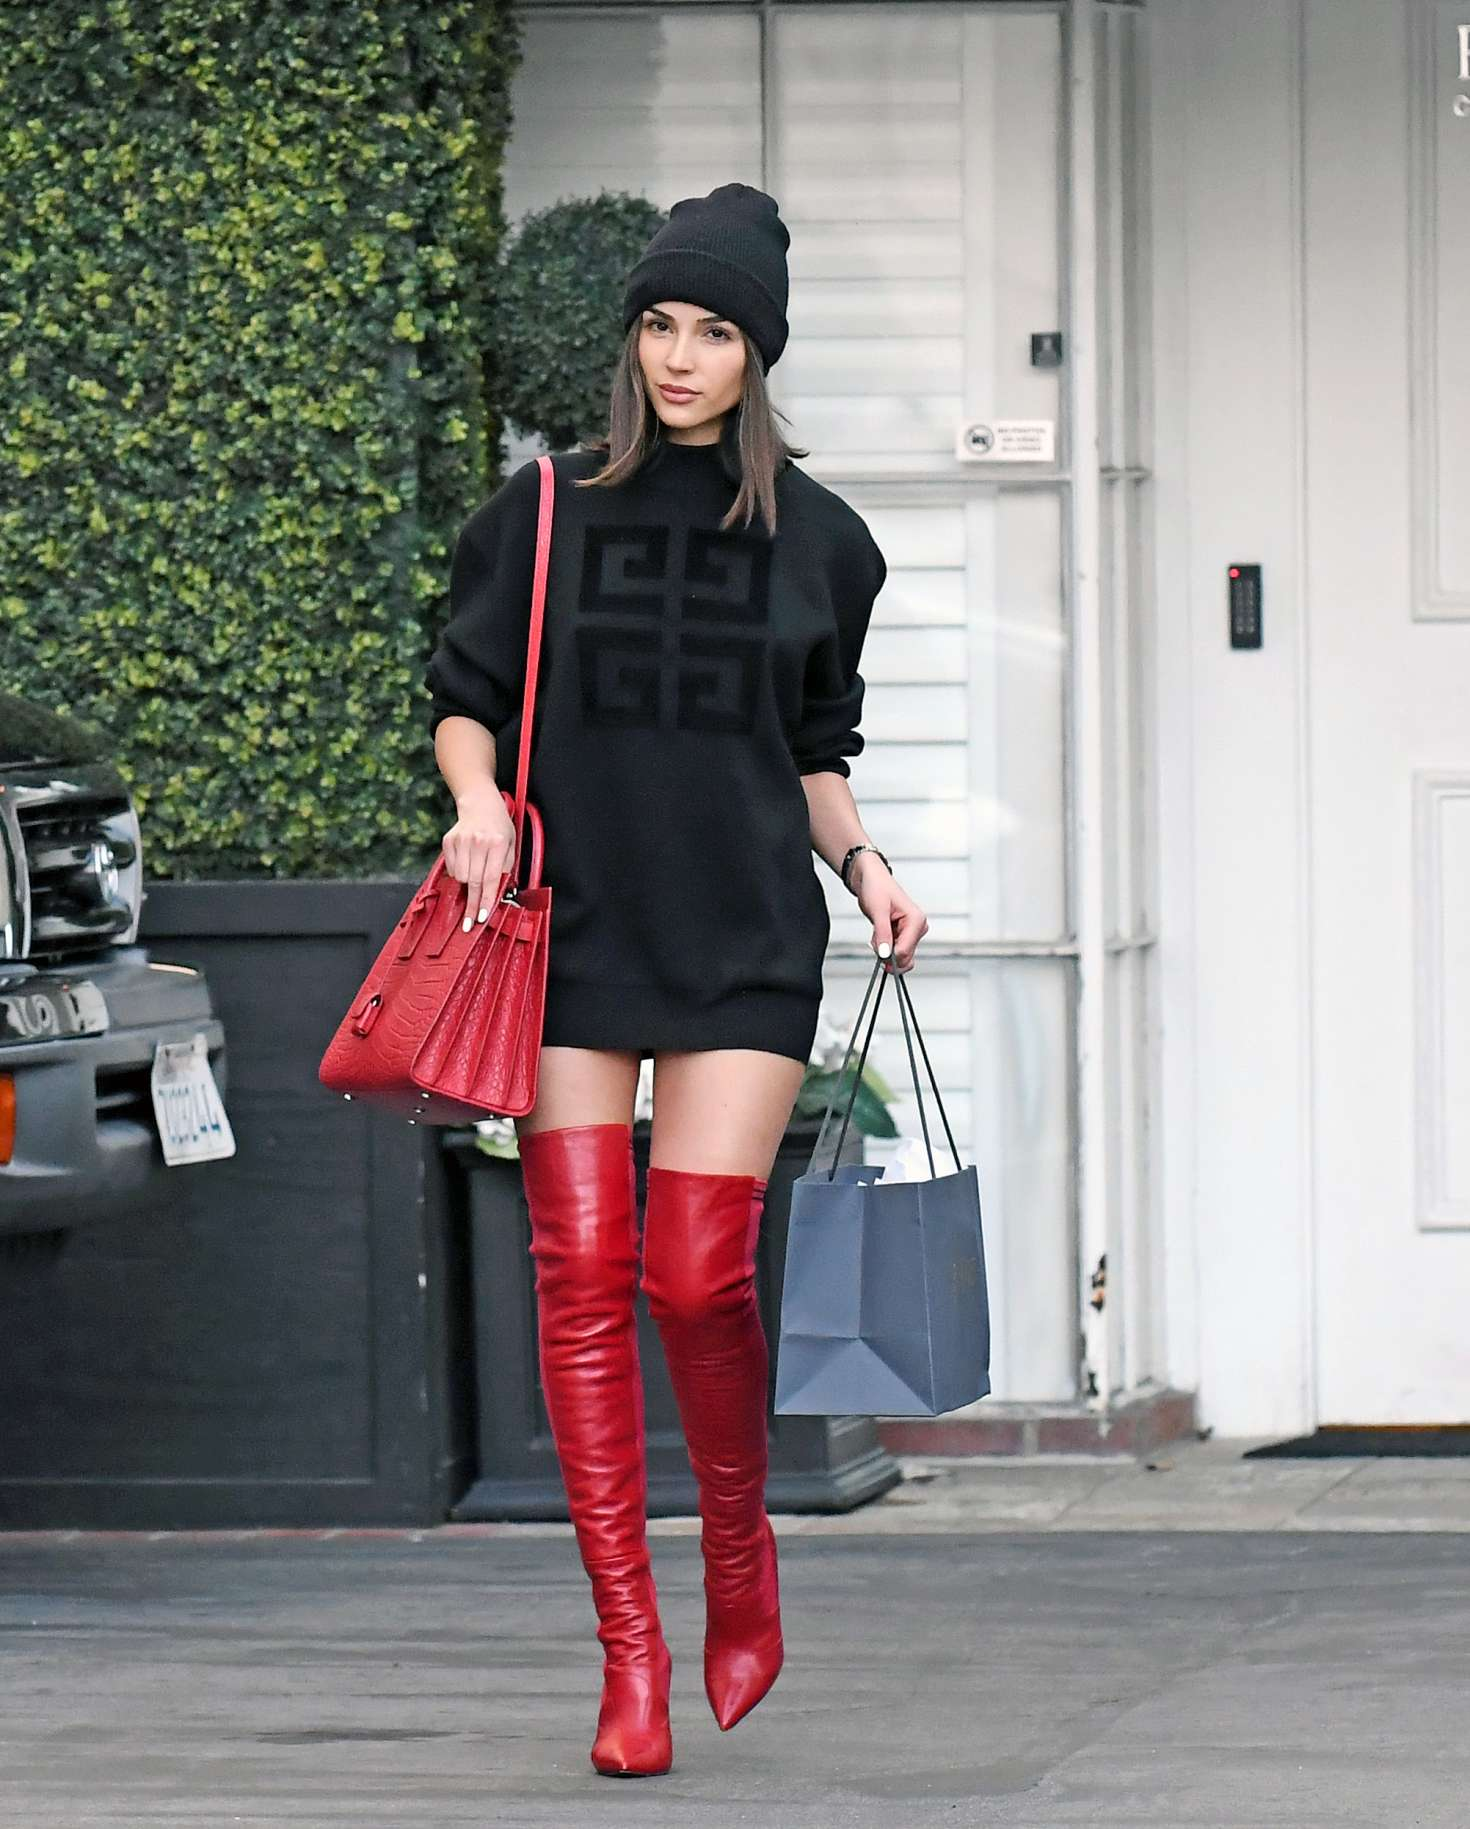 Olivia Culpo in Mini Dress and Red Boots – Shopping at Epione in Beverly Hills